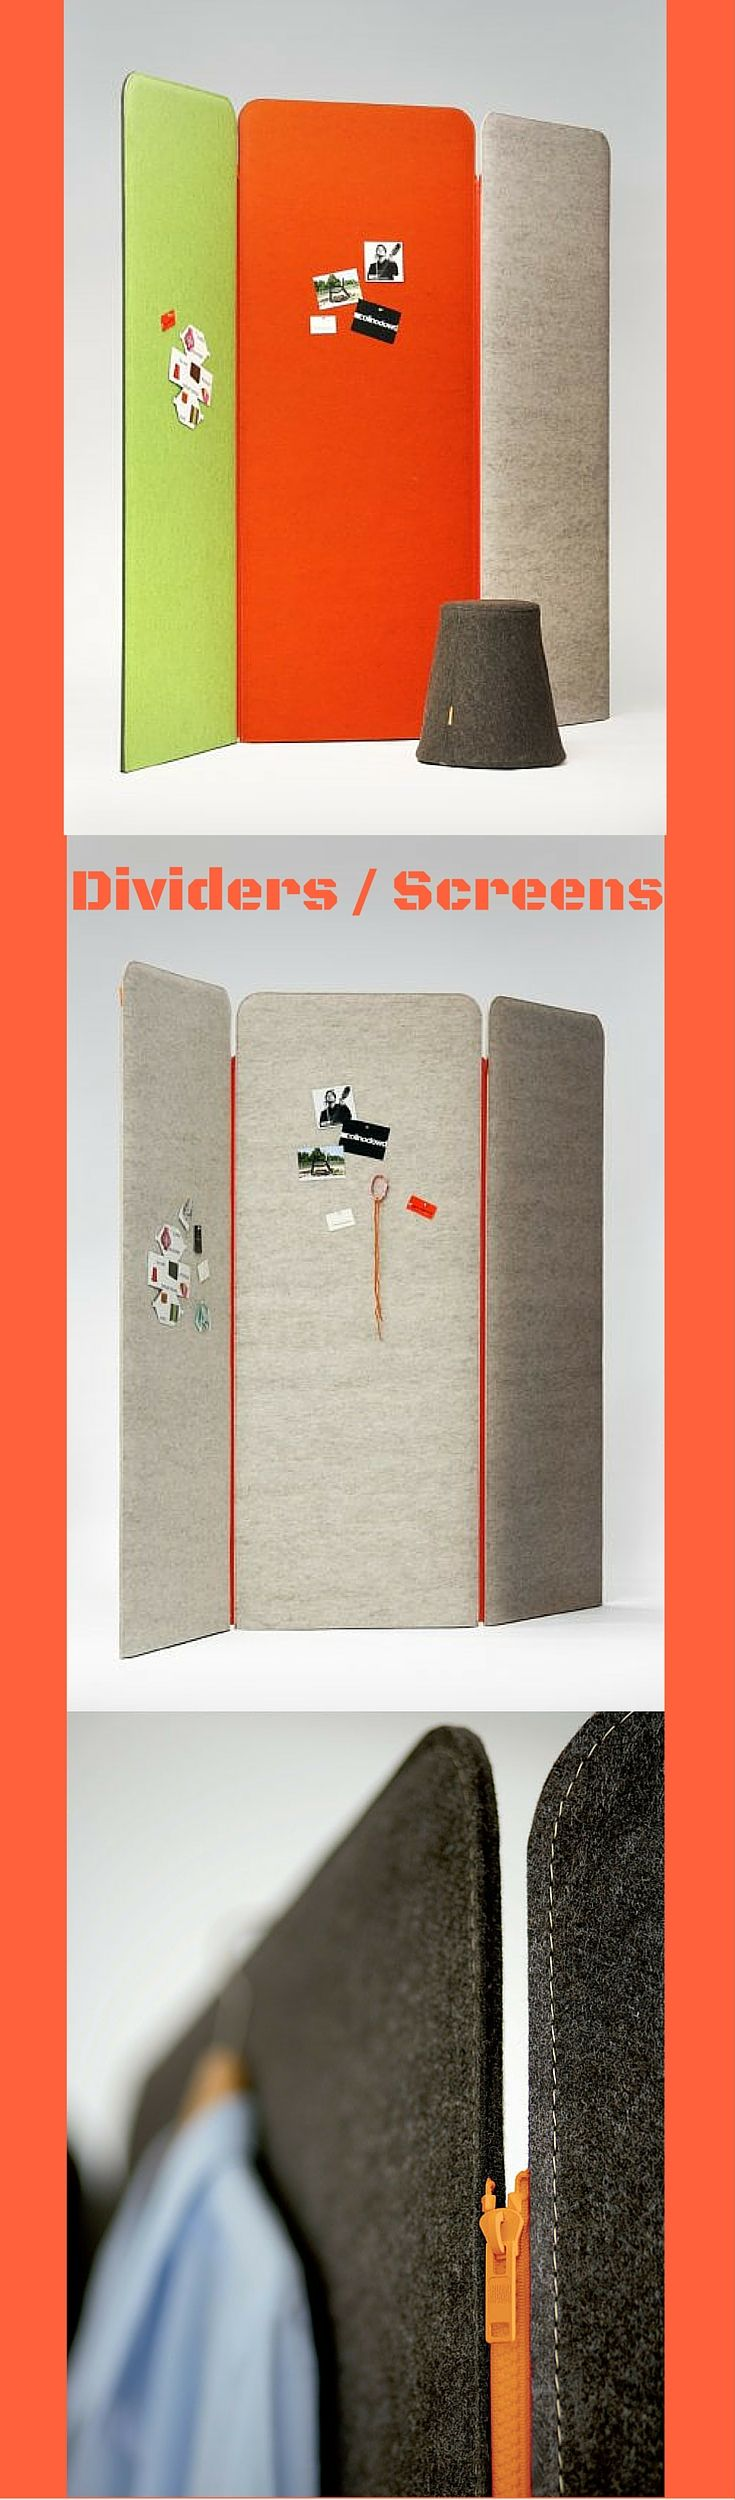 These screens can be used as dividers, screens, or partitions for offices or residential.  The inside is made of an acoustic material to help with reduce noise.  The zip feature allows you to add on to them.  You can have fun with the colors & sizes.  The fabric is a felt.